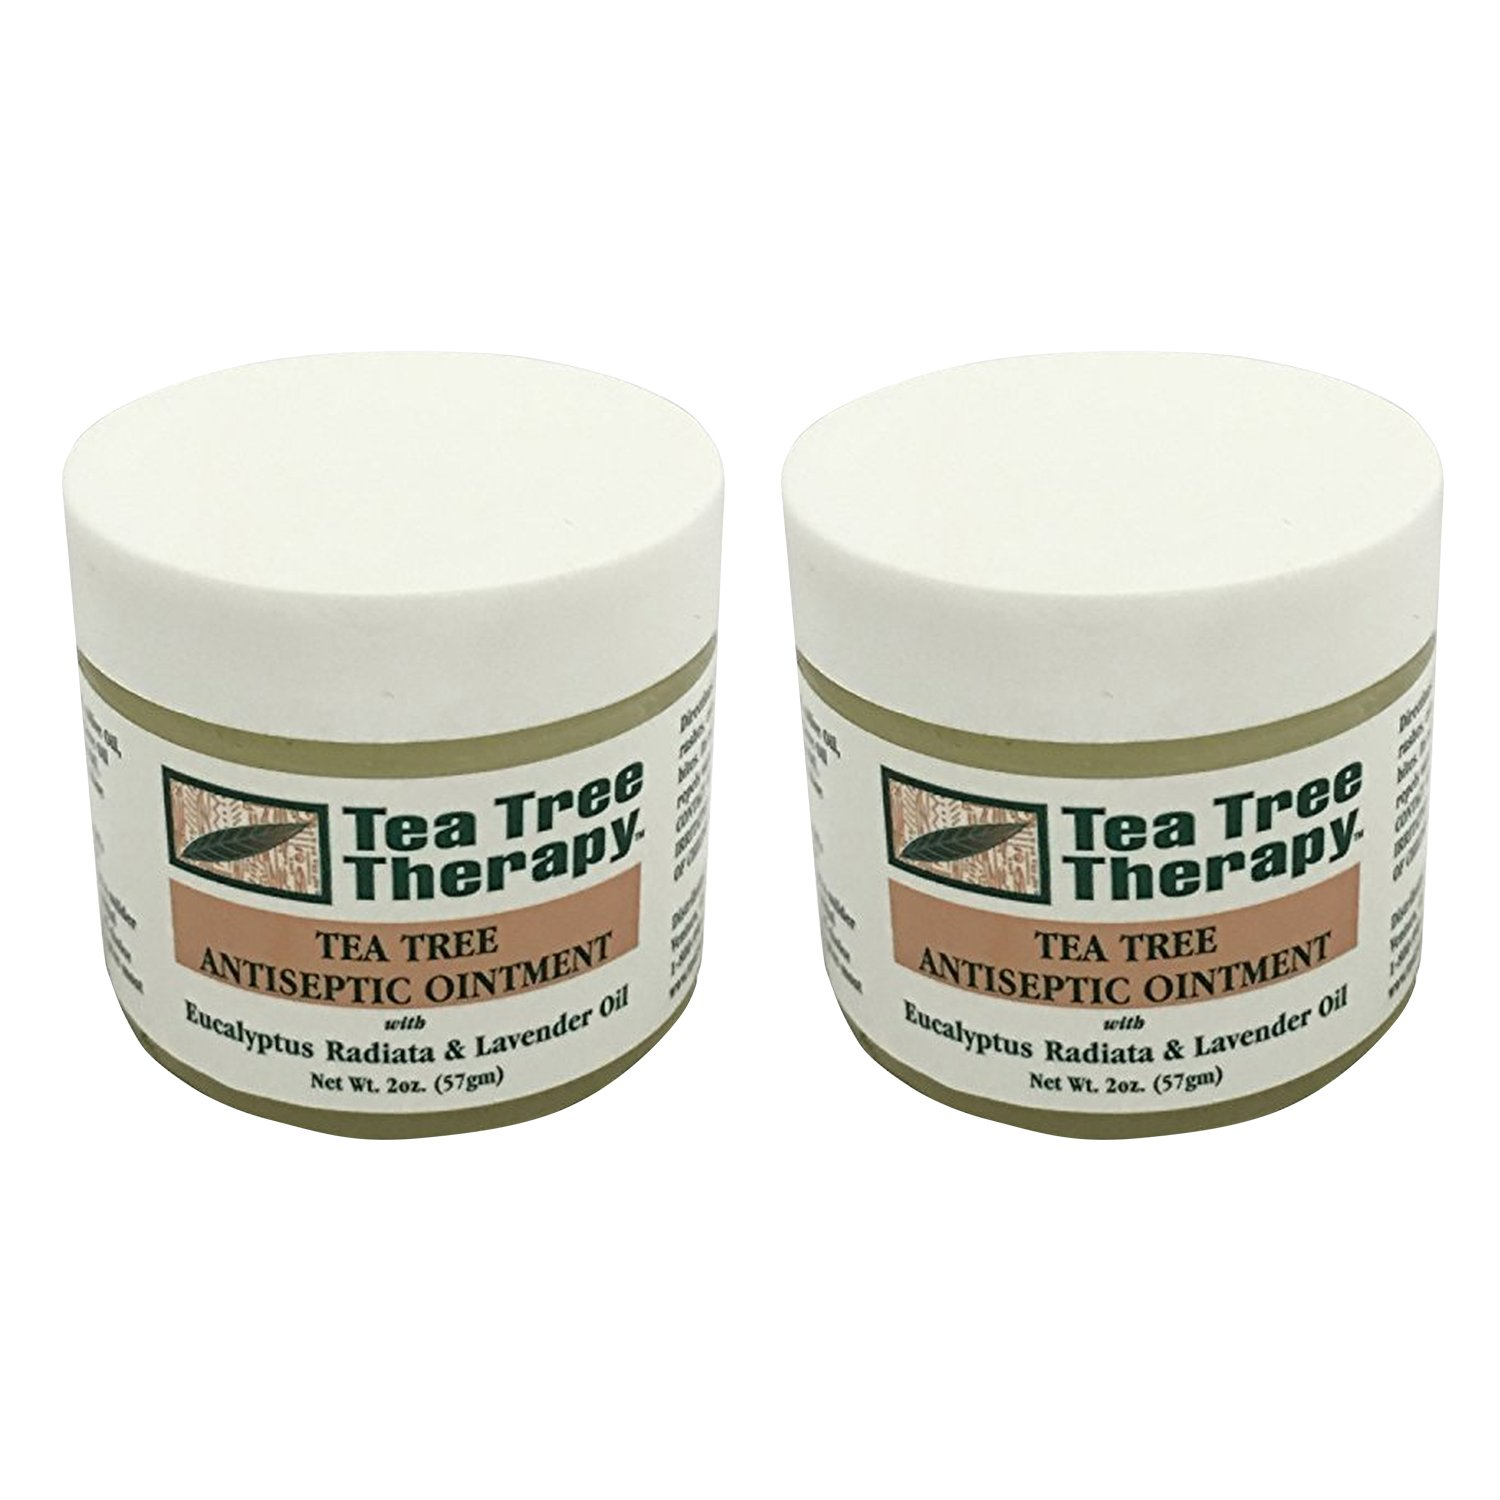 Tea Tree Therapy Tea Tree Oil Ointment 2 Ounce by Unknown